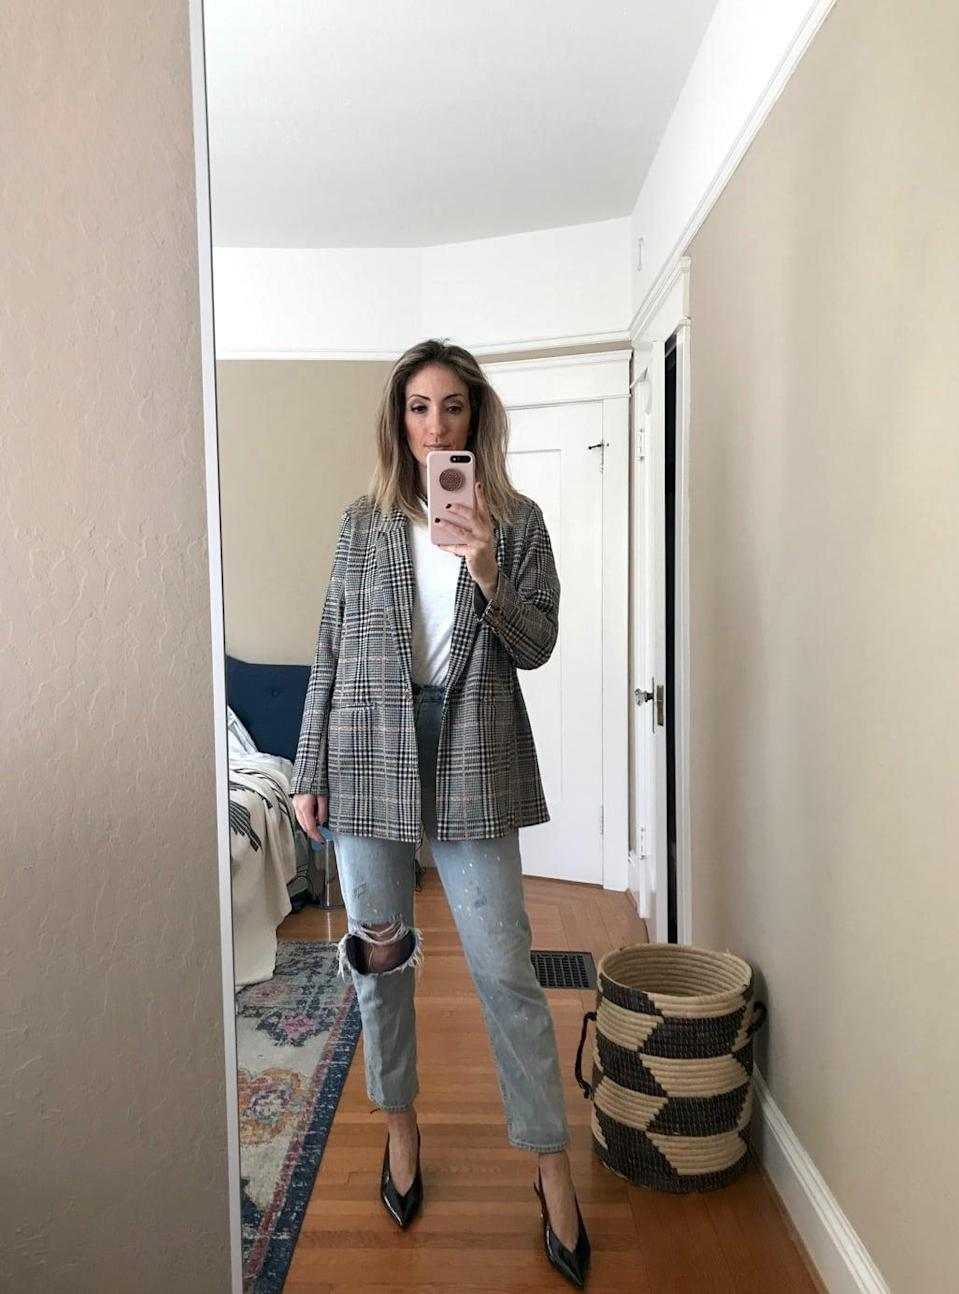 "<p><strong>Item:</strong> <span>Old Navy Patterned Boyfriend Blazer</span> ($45, originally $50)</p> <p><strong>What our editor said: </strong>""I knew as soon as I unfurled the jacket from its packaging, this is exactly how I wanted to style it. The jacket is way softer than it looks on-site - and to be honest, much softer than every other blazer I own - so I wasn't sure how it would hang. But it blew my mind. It feels like a flannel on but wears like a blazer. This will definitely become my go-to spring look. It's essentially just jeans and a t-shirt!"" - RB</p> <p>If you want to read more, <a href=""https://www.popsugar.com/fashion/best-boyfriend-blazer-at-old-navy-47231914"" class=""link rapid-noclick-resp"" rel=""nofollow noopener"" target=""_blank"" data-ylk=""slk:here is the complete review"">here is the complete review</a>.</p>"